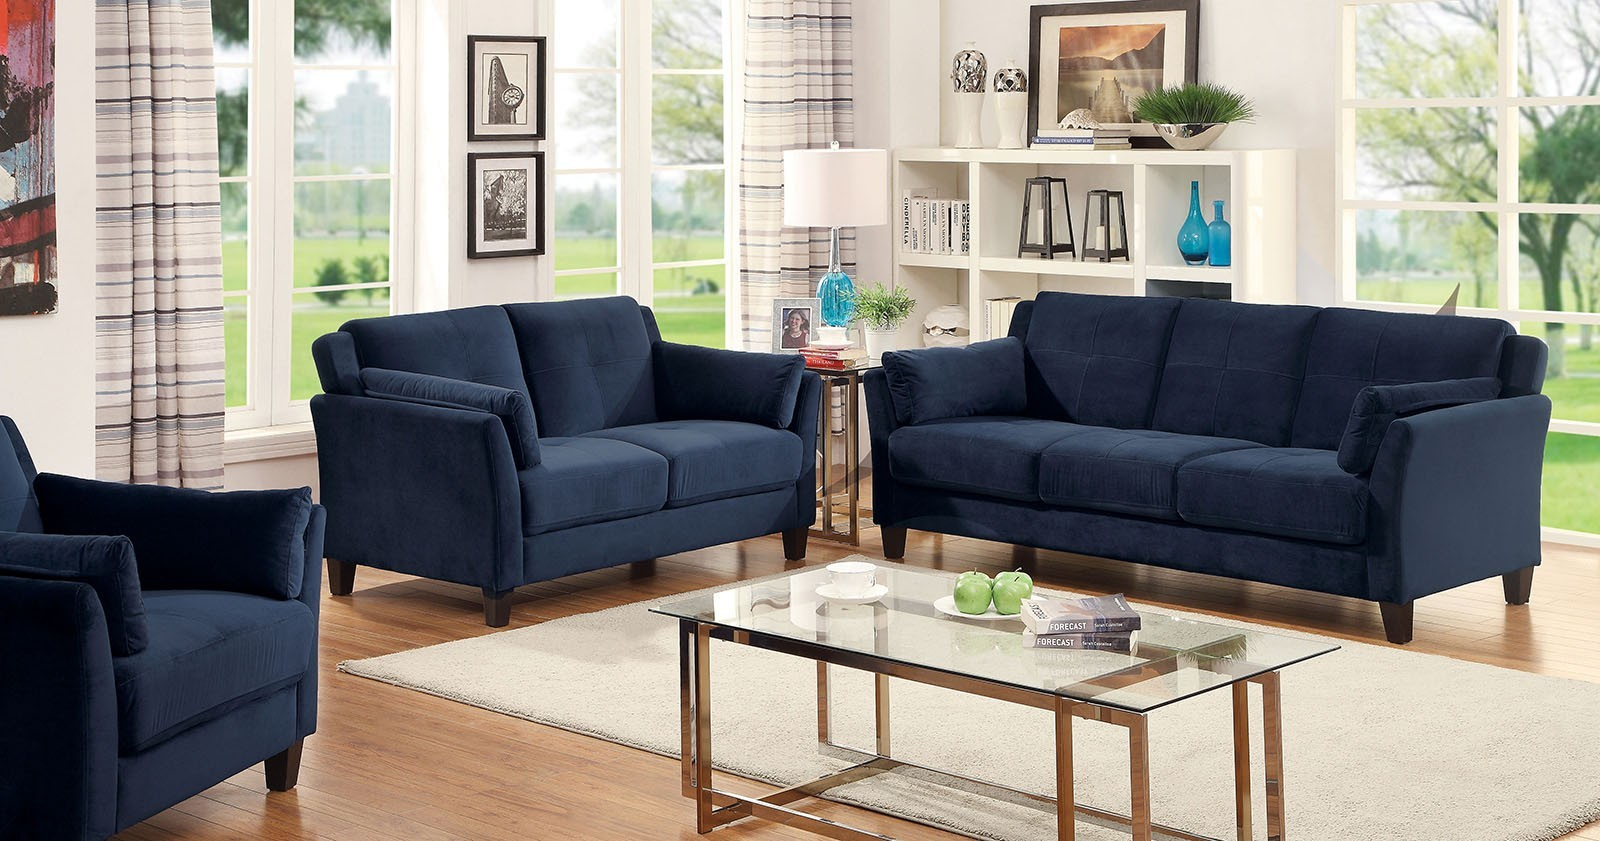 Ysabel 2pc Sofa and Loveseat in blue